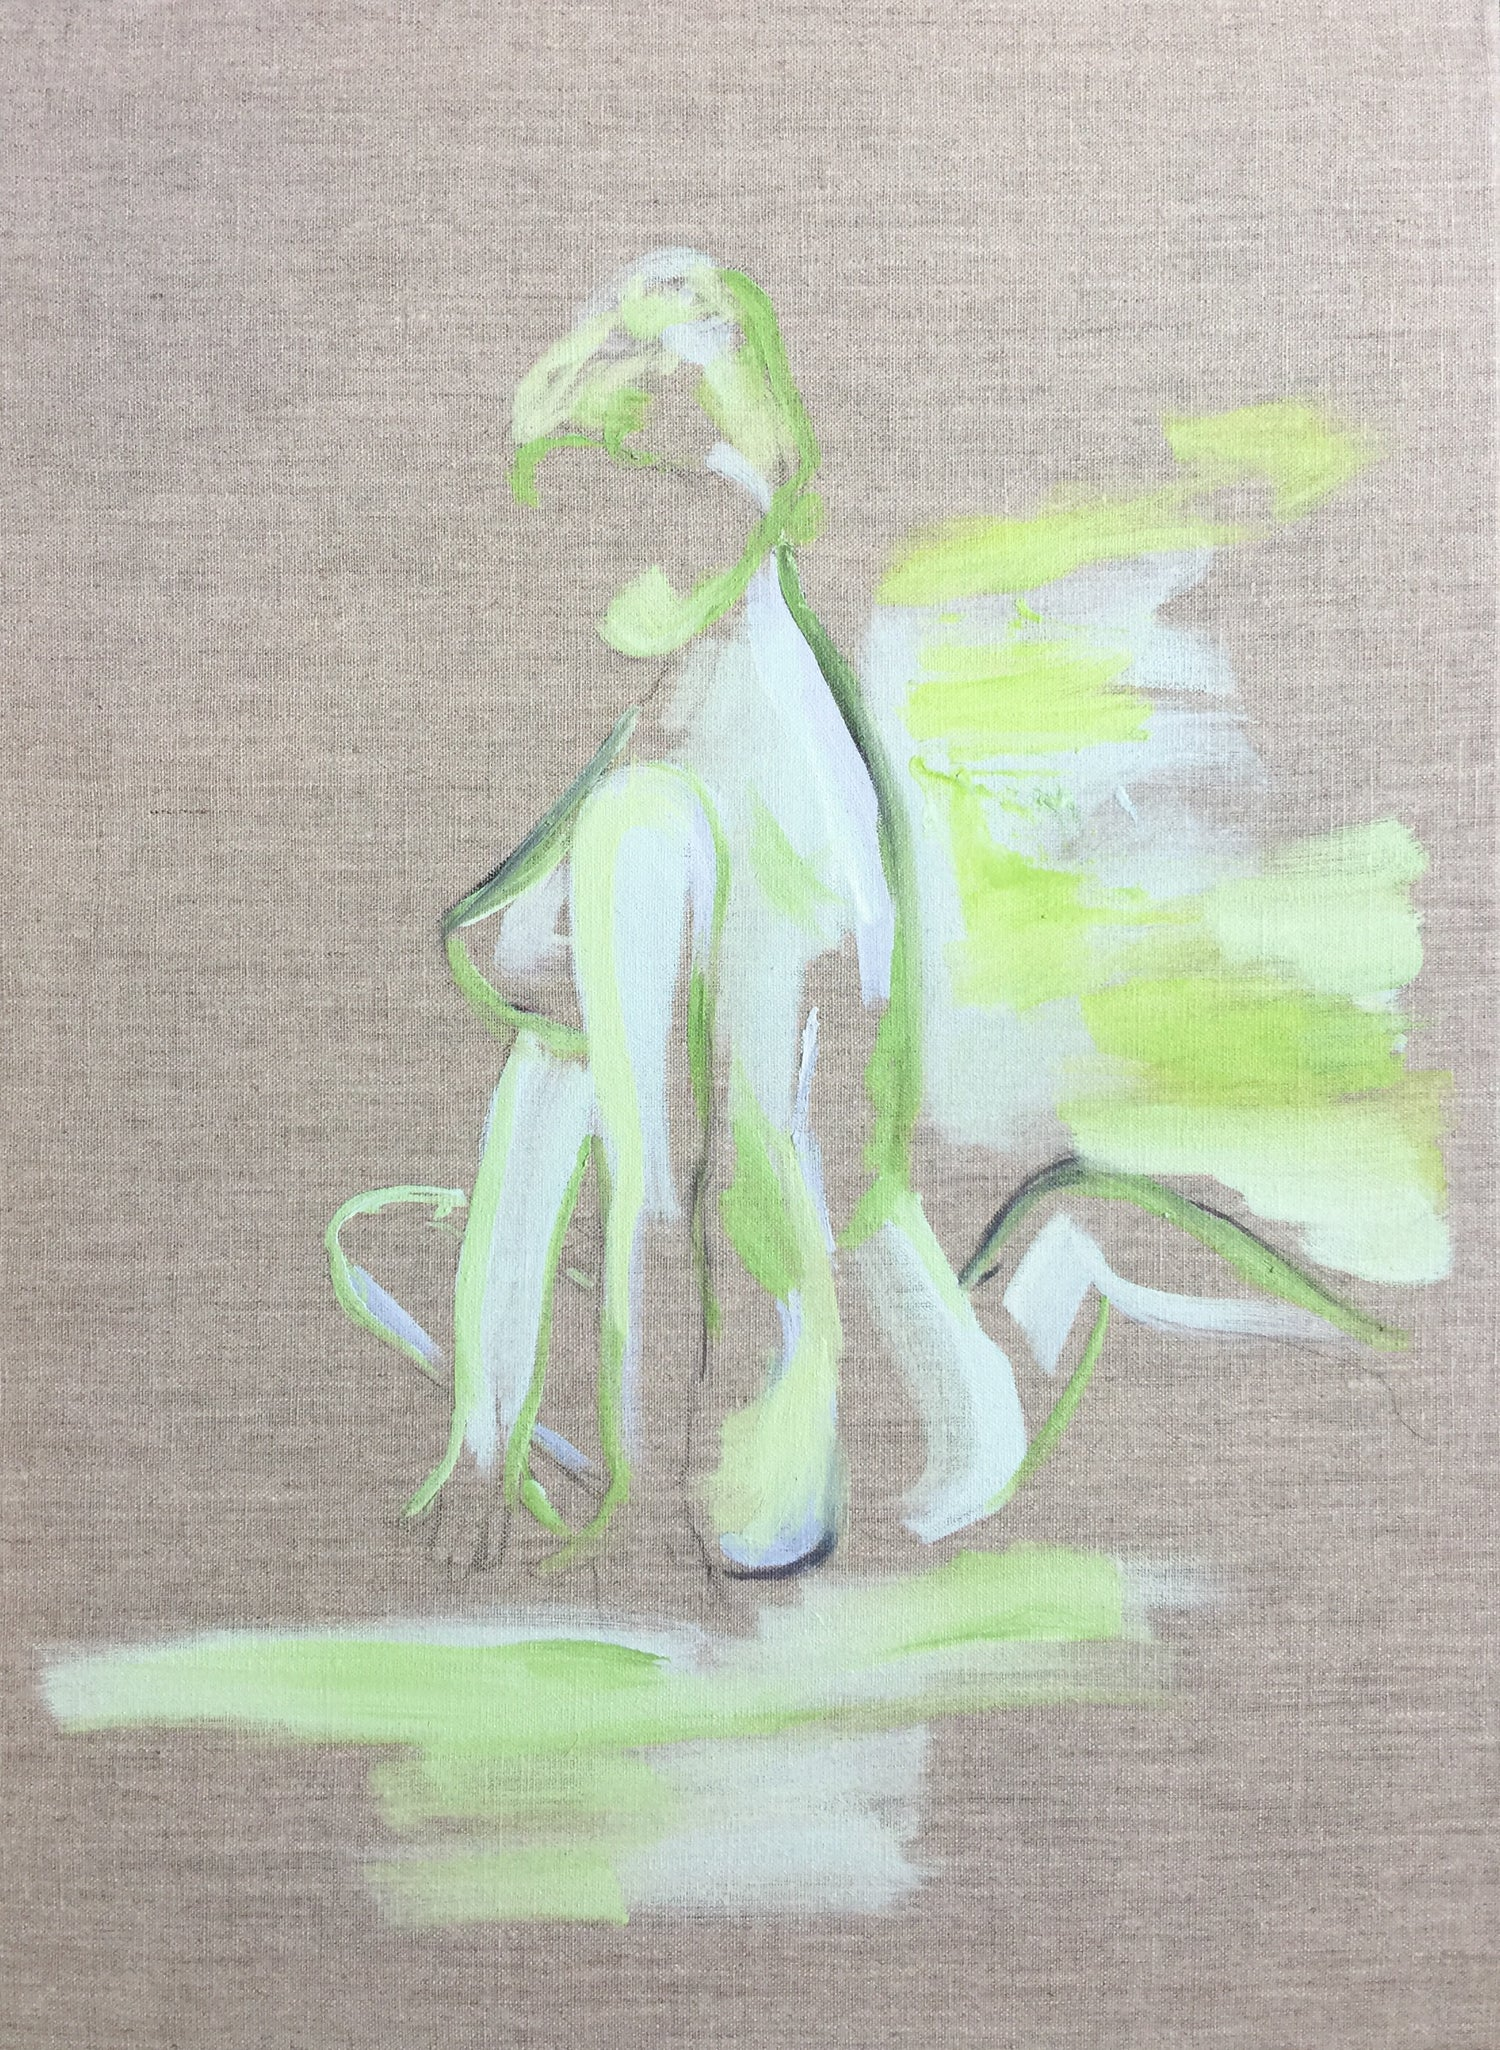 Image of 18 x 24 inch nude in green on linen